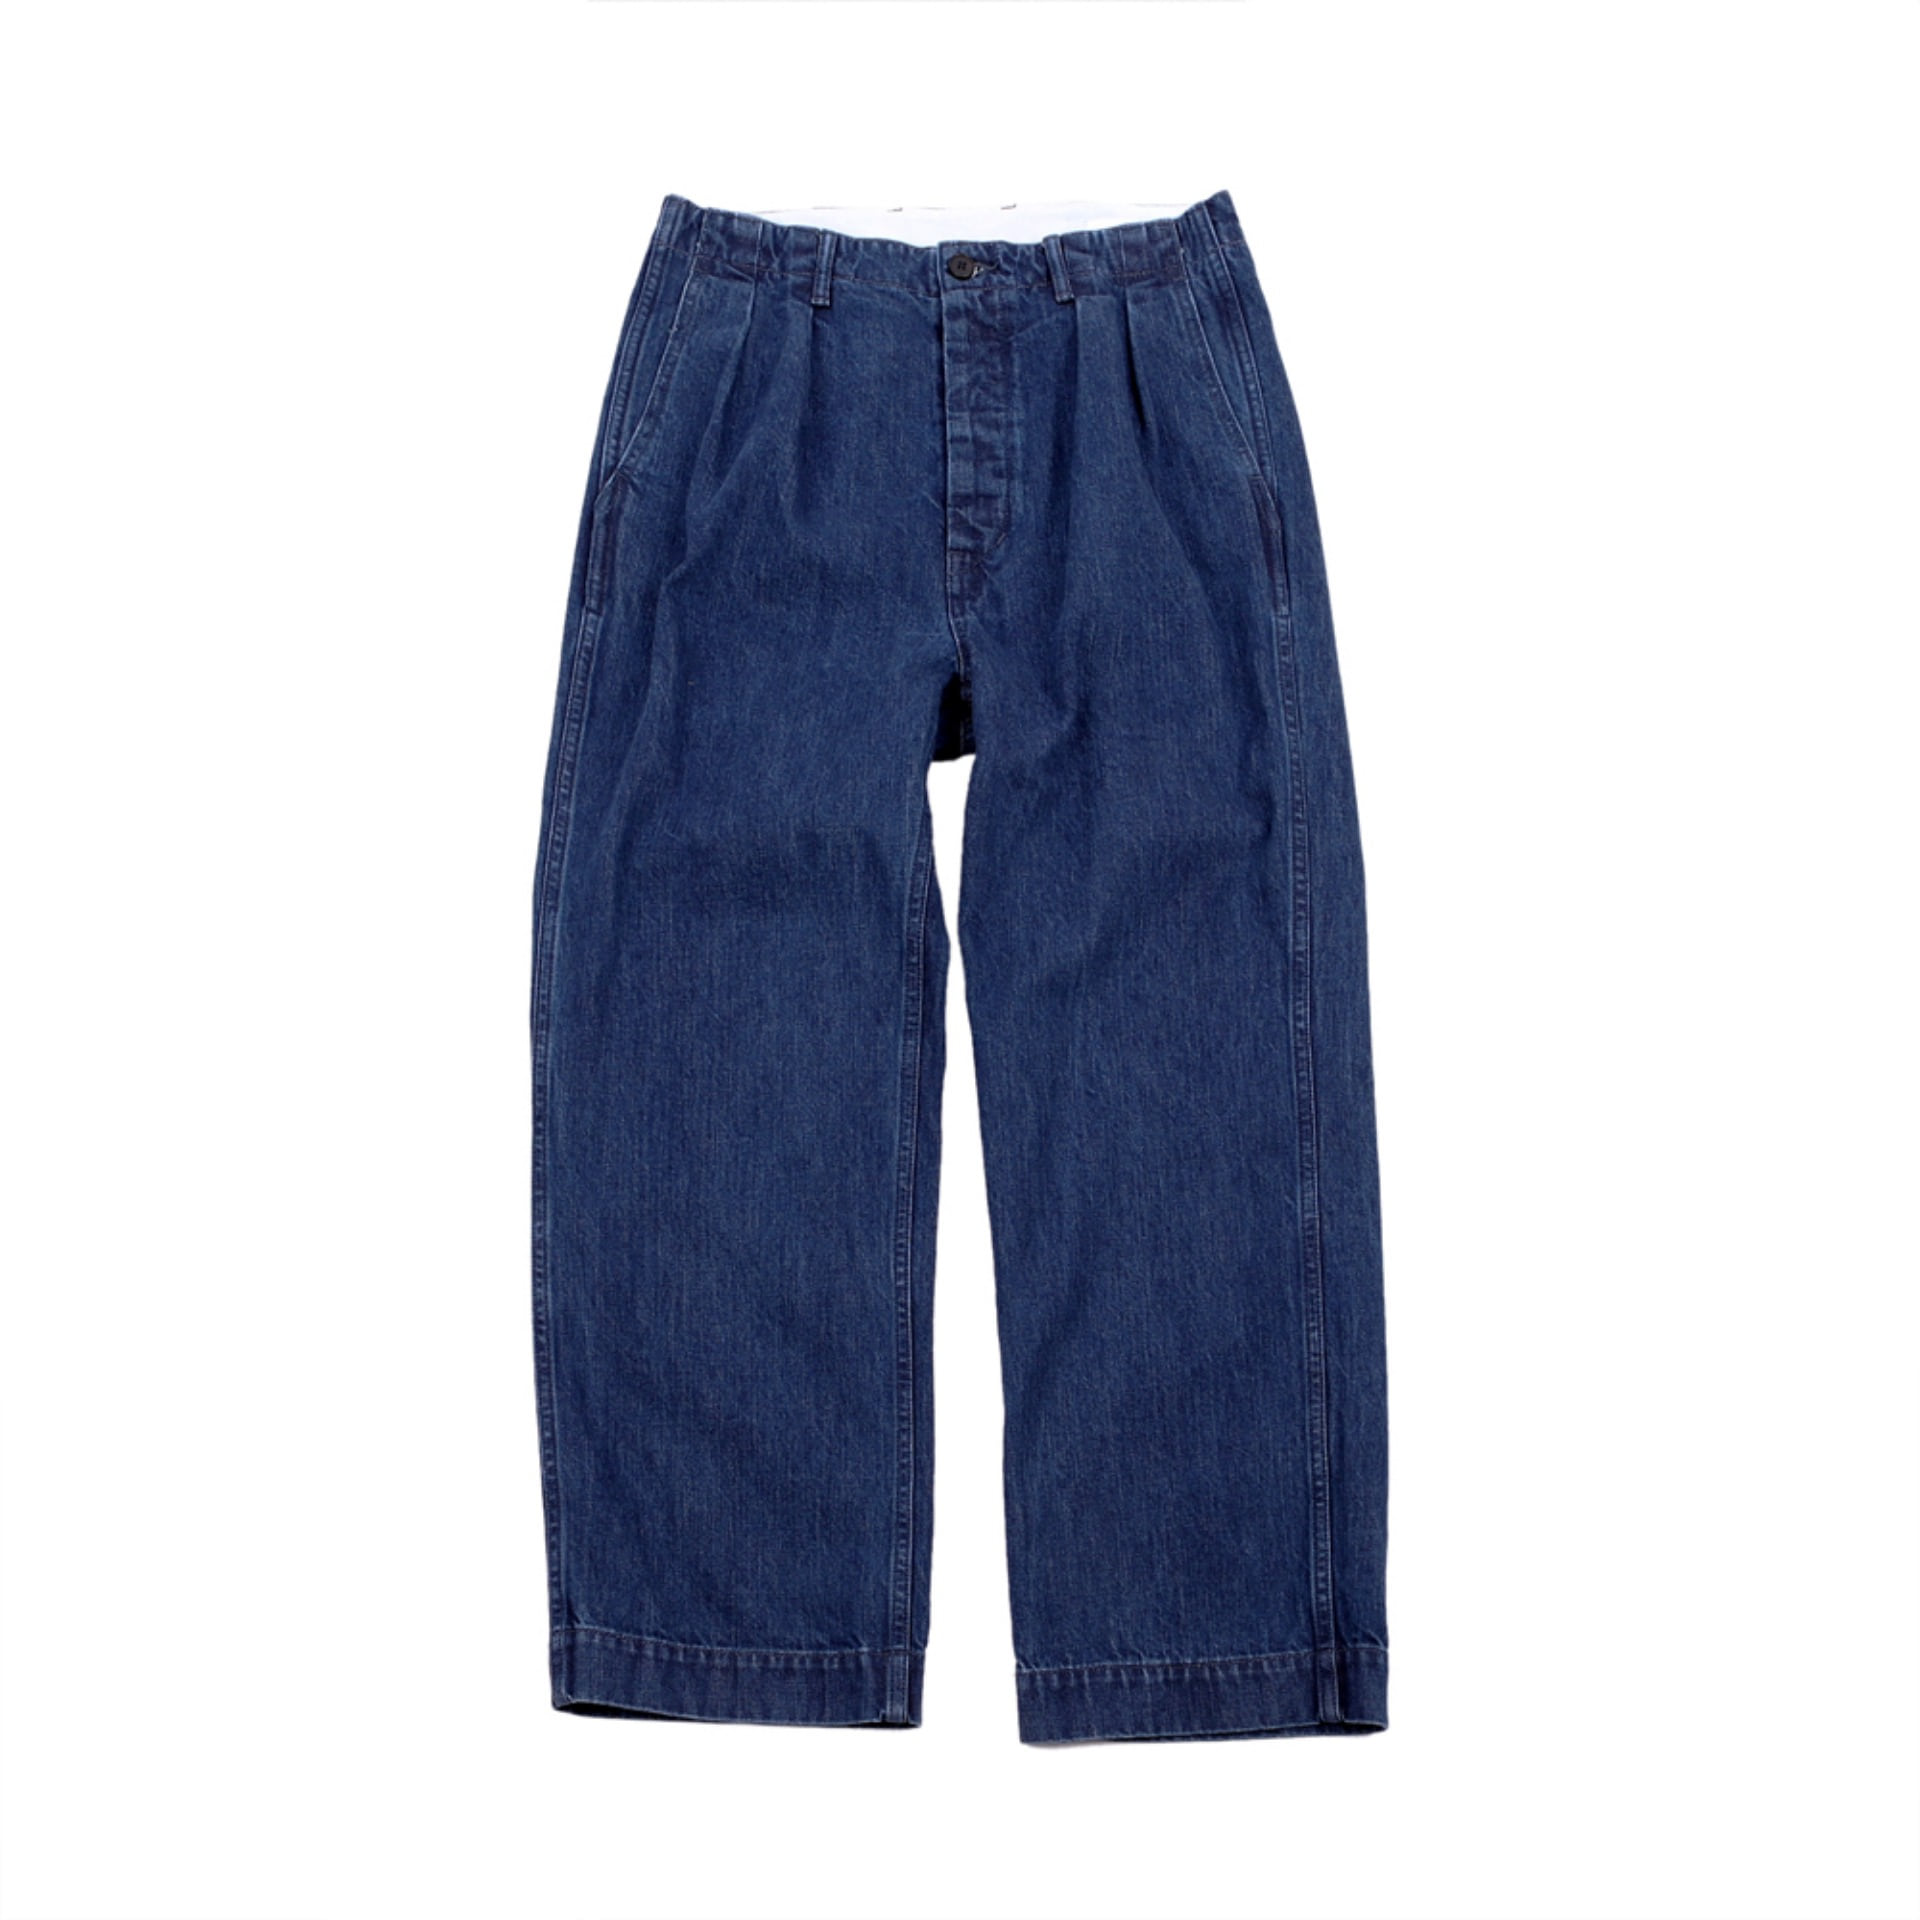 HATSKI 2TUCK DENIM TROUSER(BLUE)